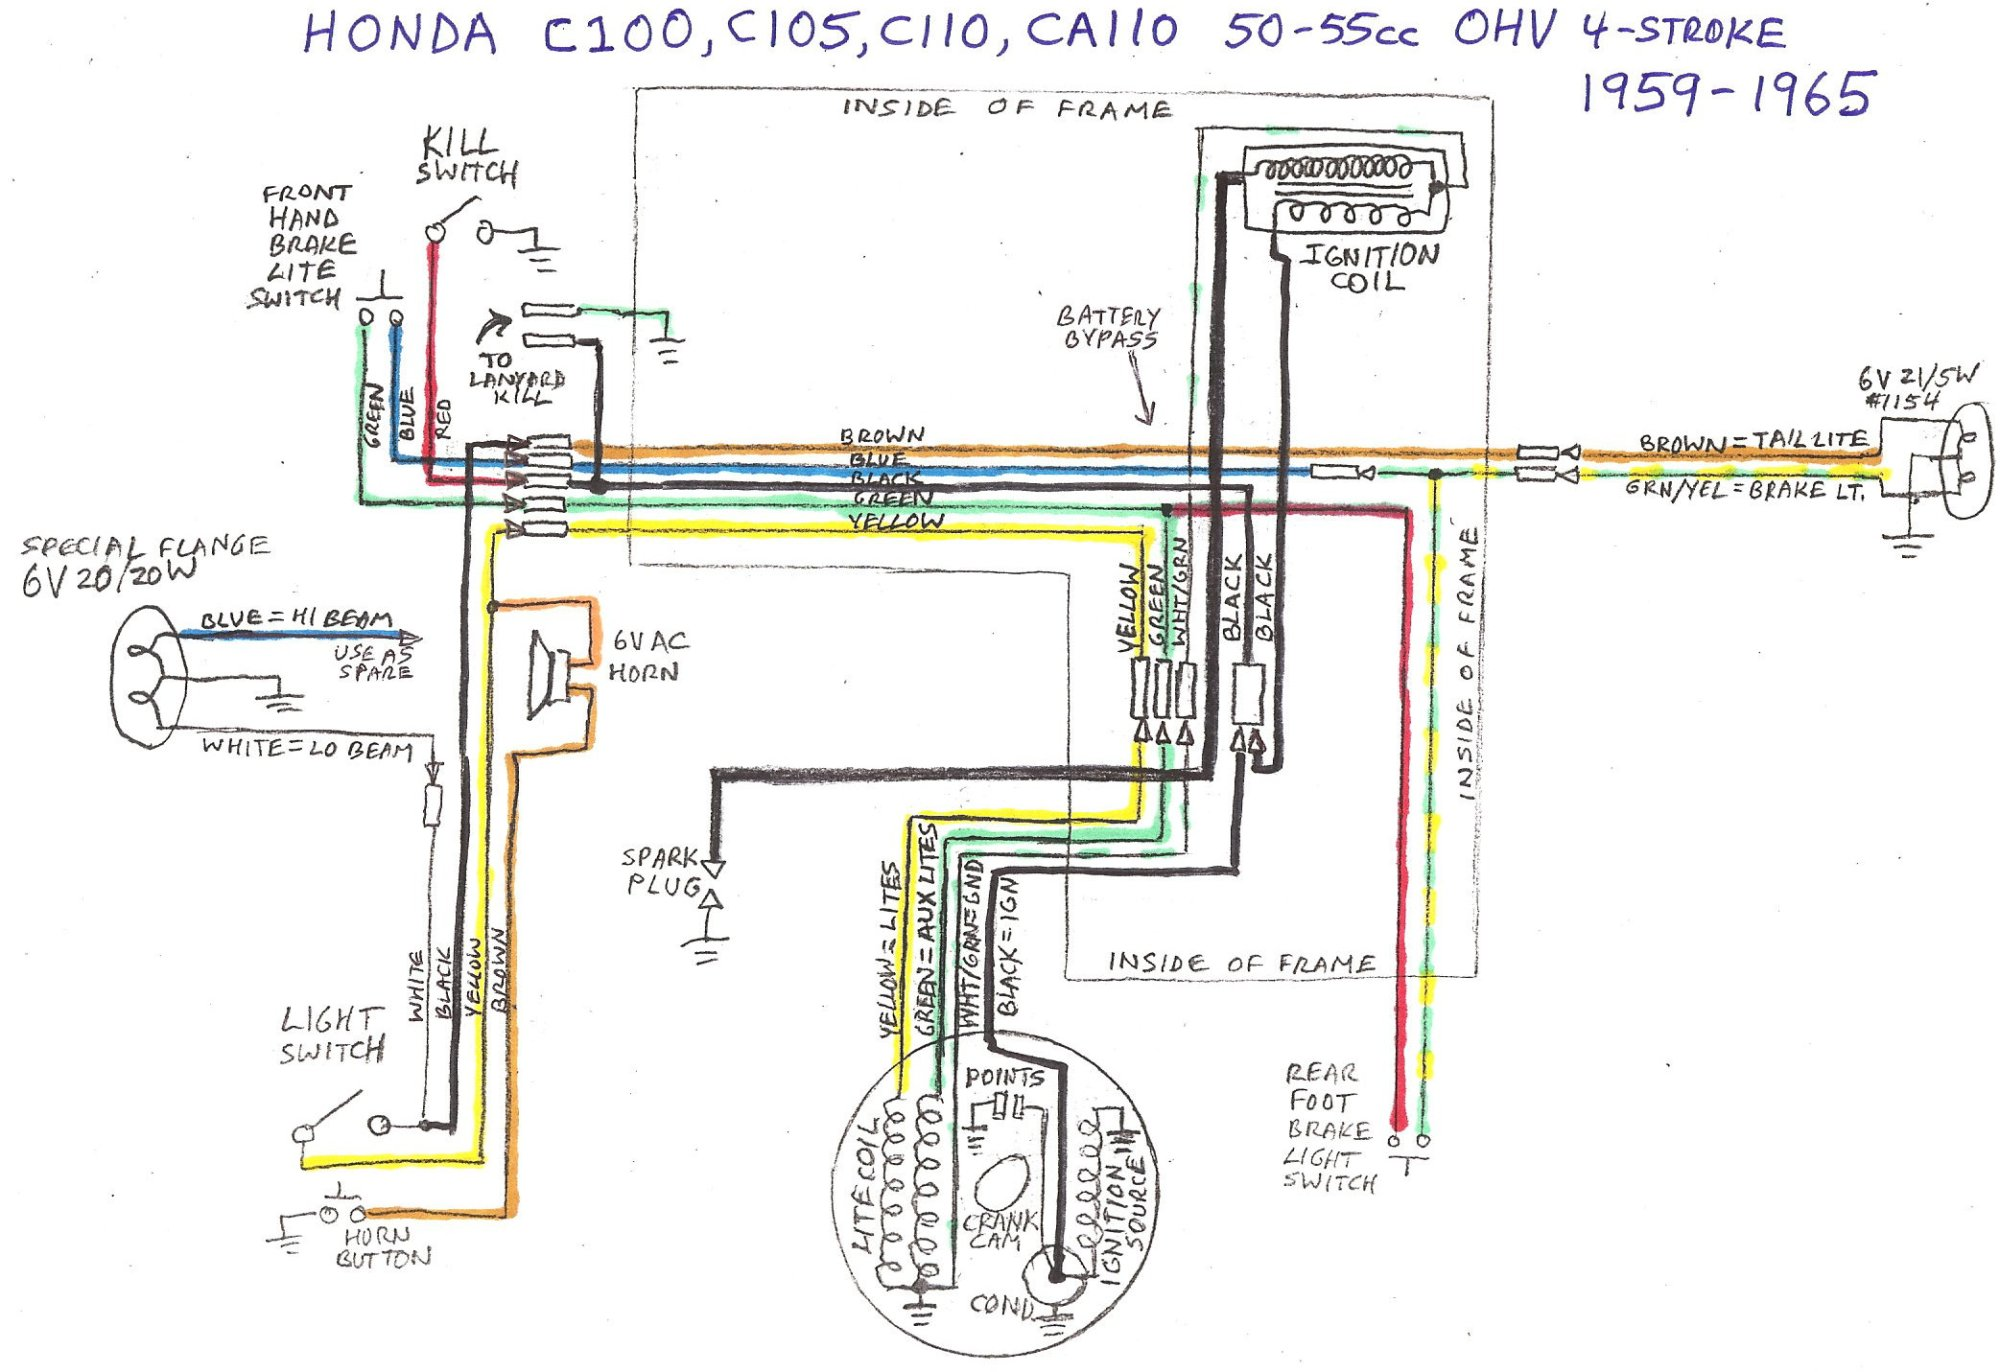 hight resolution of honda mr50 wiring diagram wiring diagram name honda mr50 wiring diagram wiring library diagram on honda